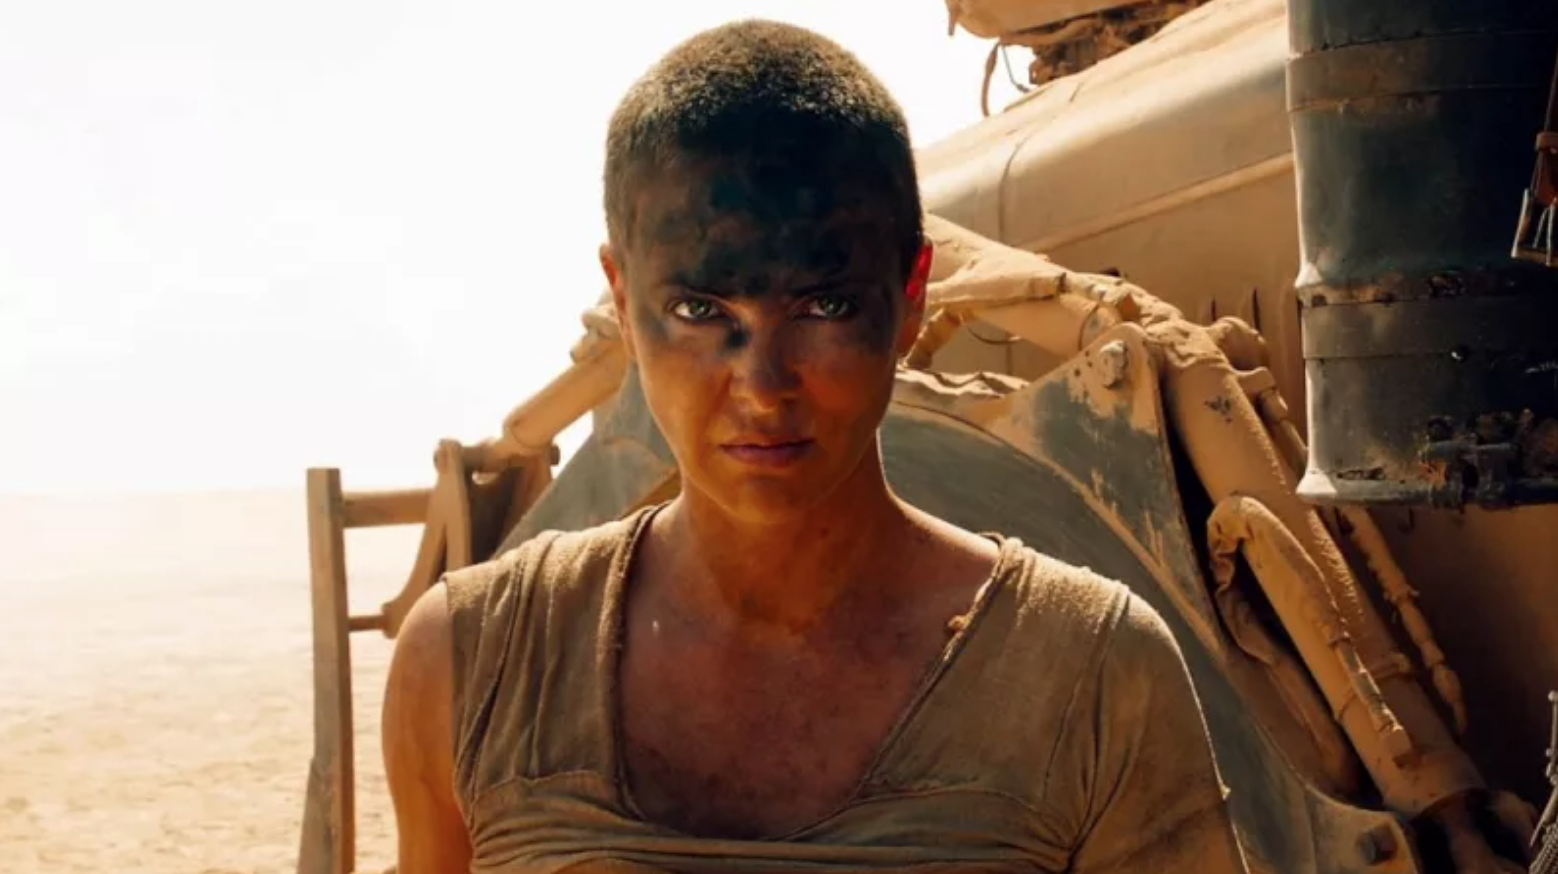 George Miller's First Project Since Mad Max: Fury Road Is A Supernatural Love Story